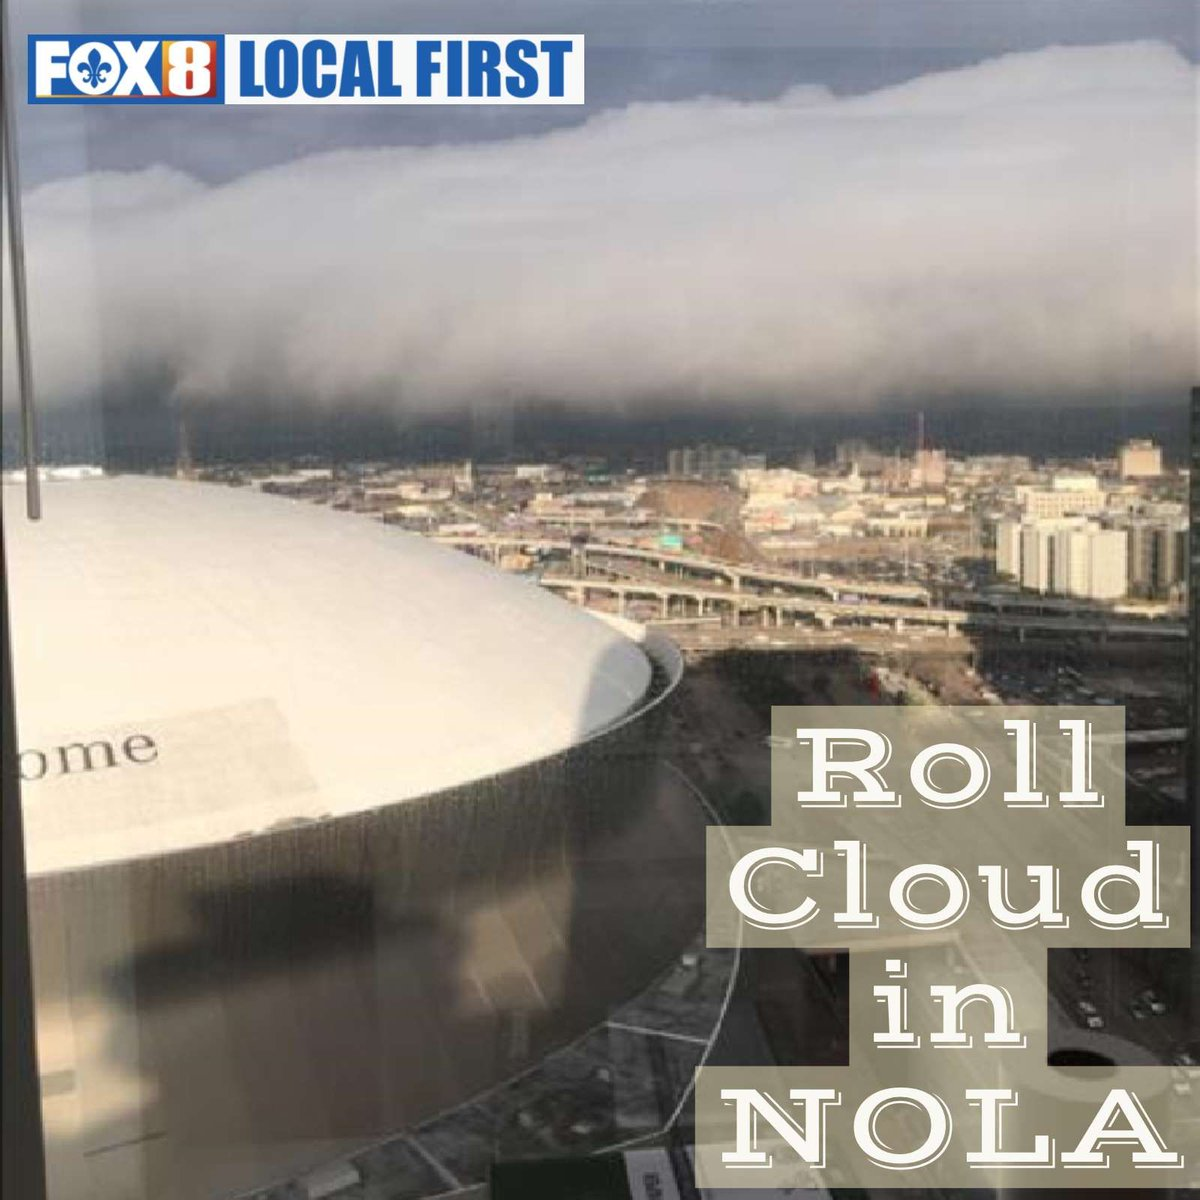 Fox 8 weather watchers send their photos of the roll cloud that